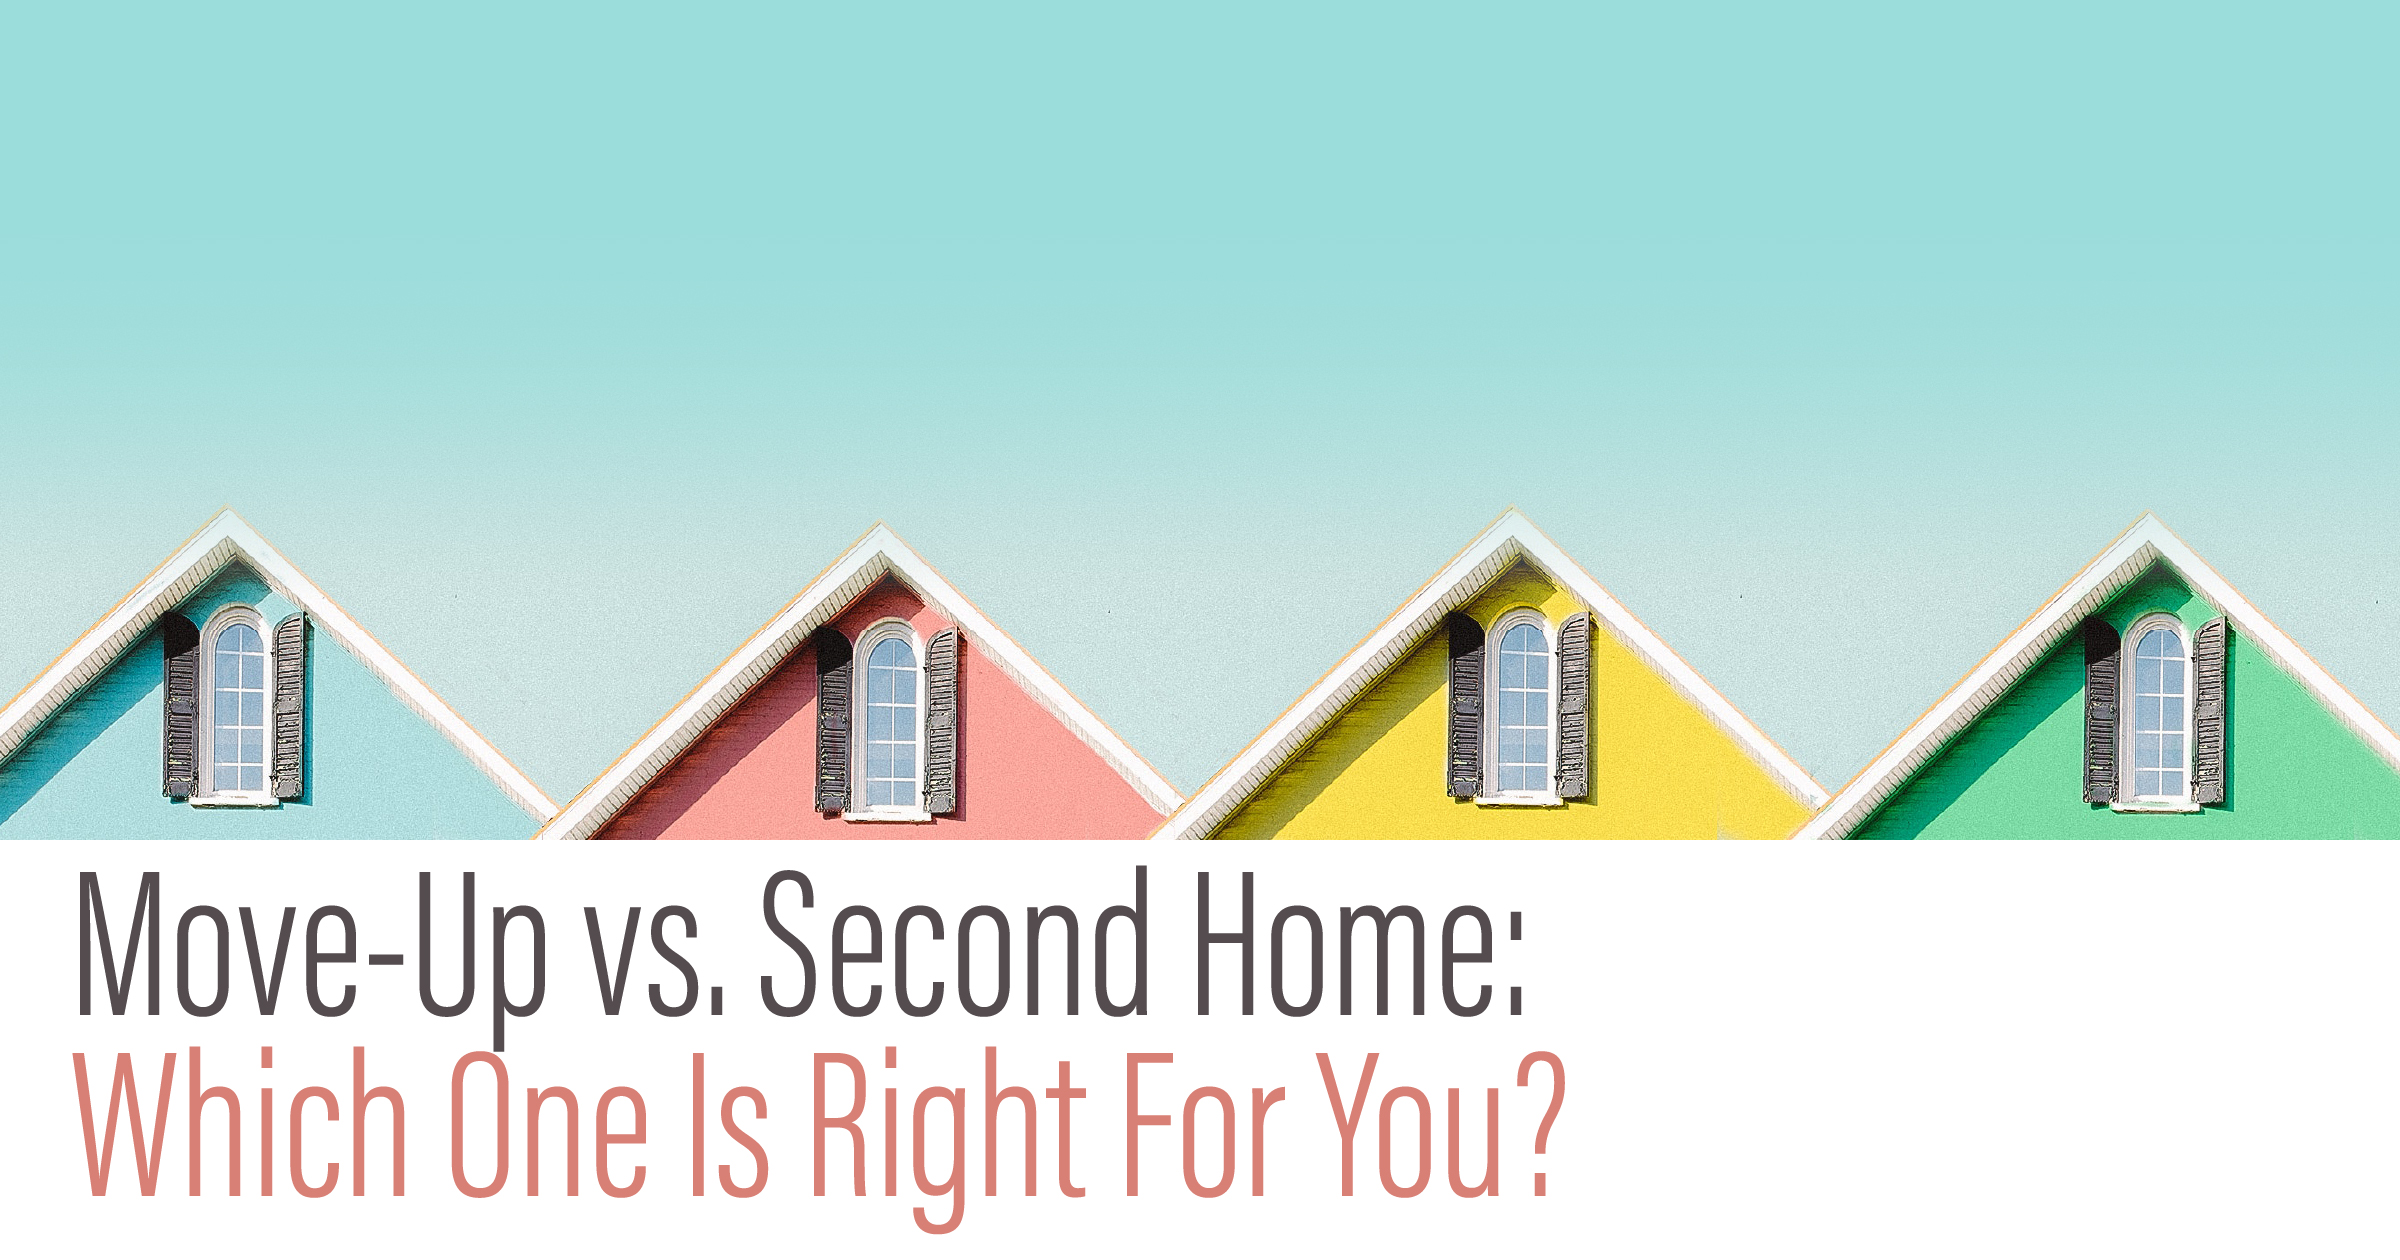 Move-Up vs. Second Home in Flagstaff Which One Is Right For You